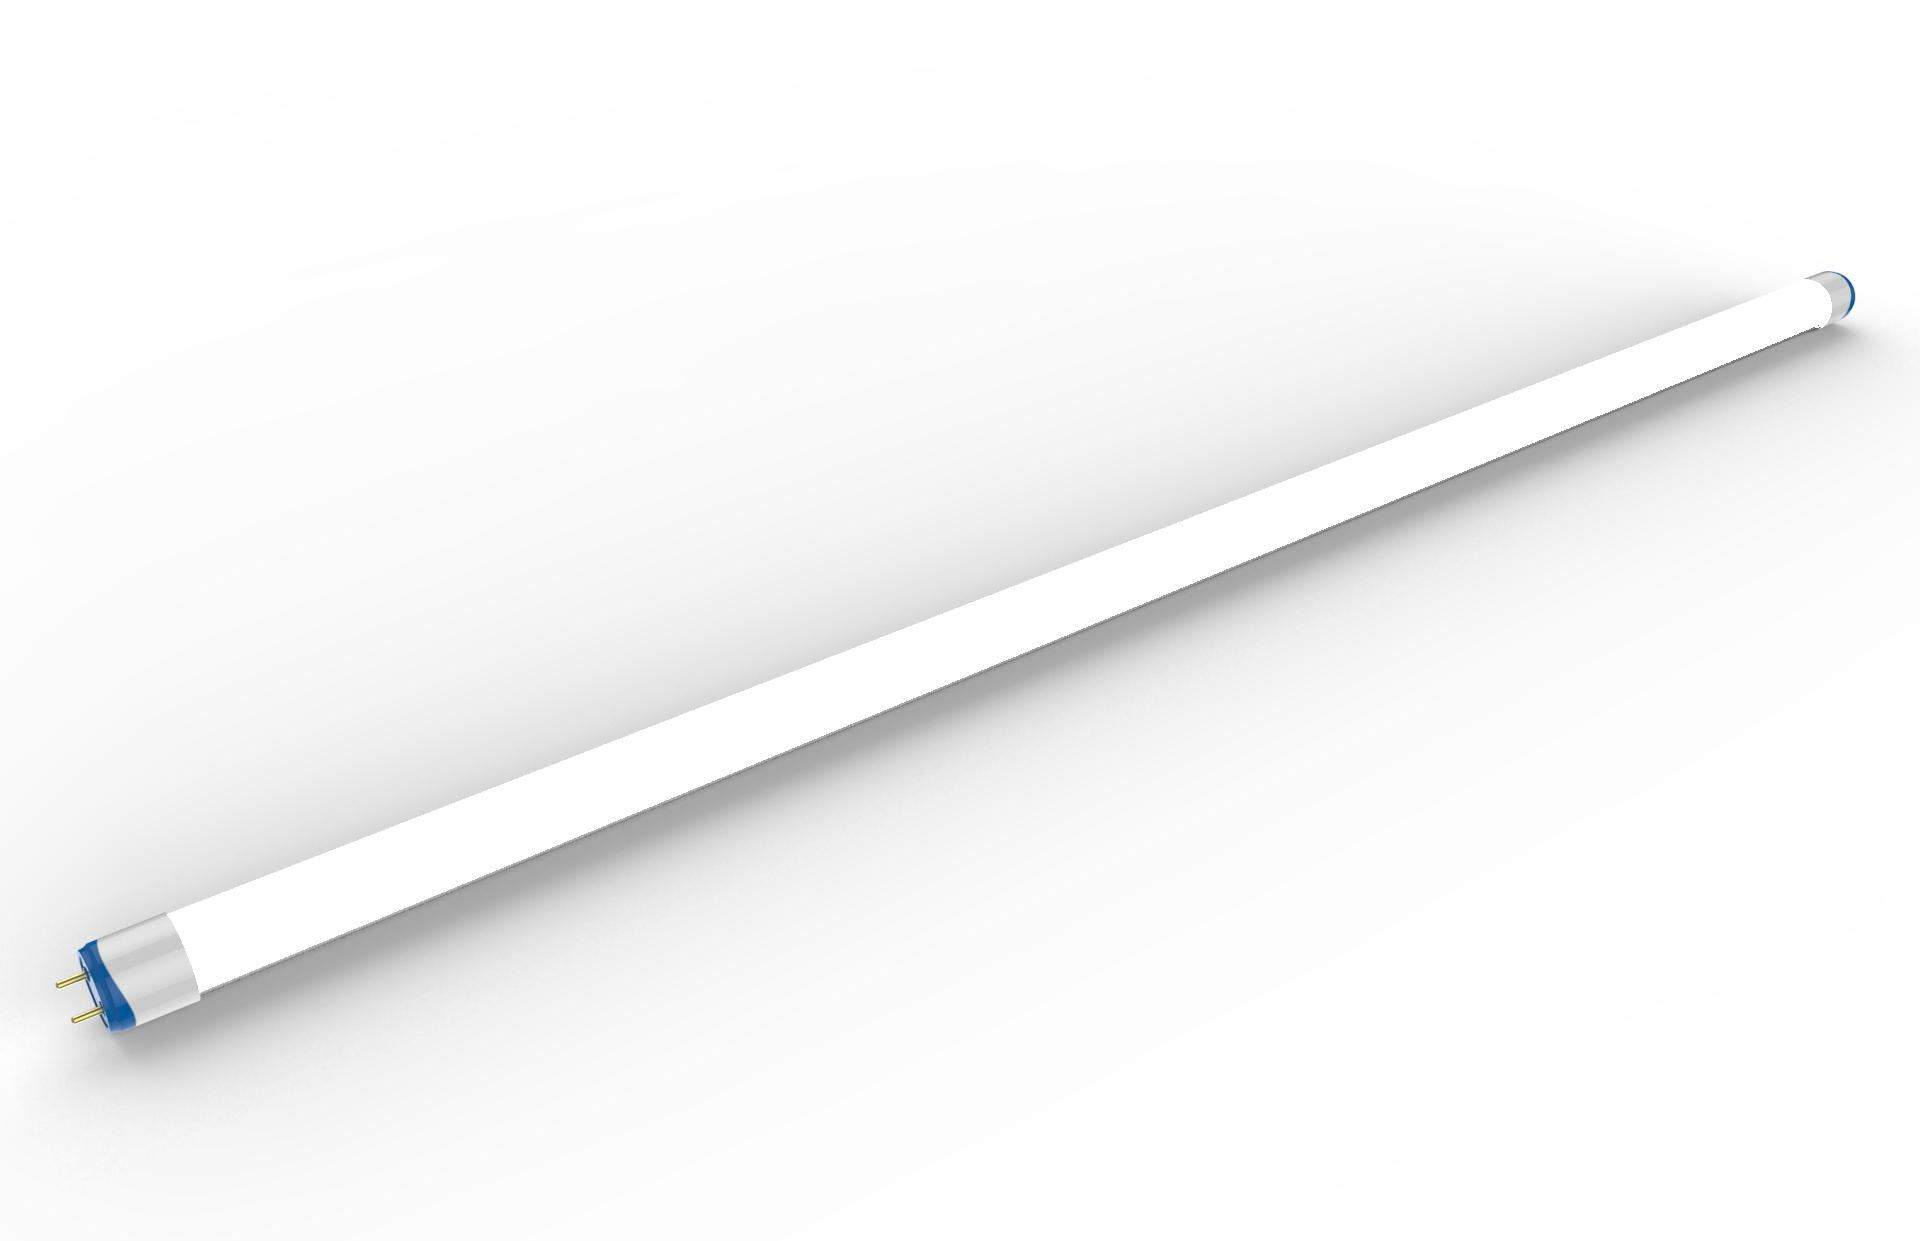 LED t8 tube Ultra Bright 160lm/w with TUV certificate 11